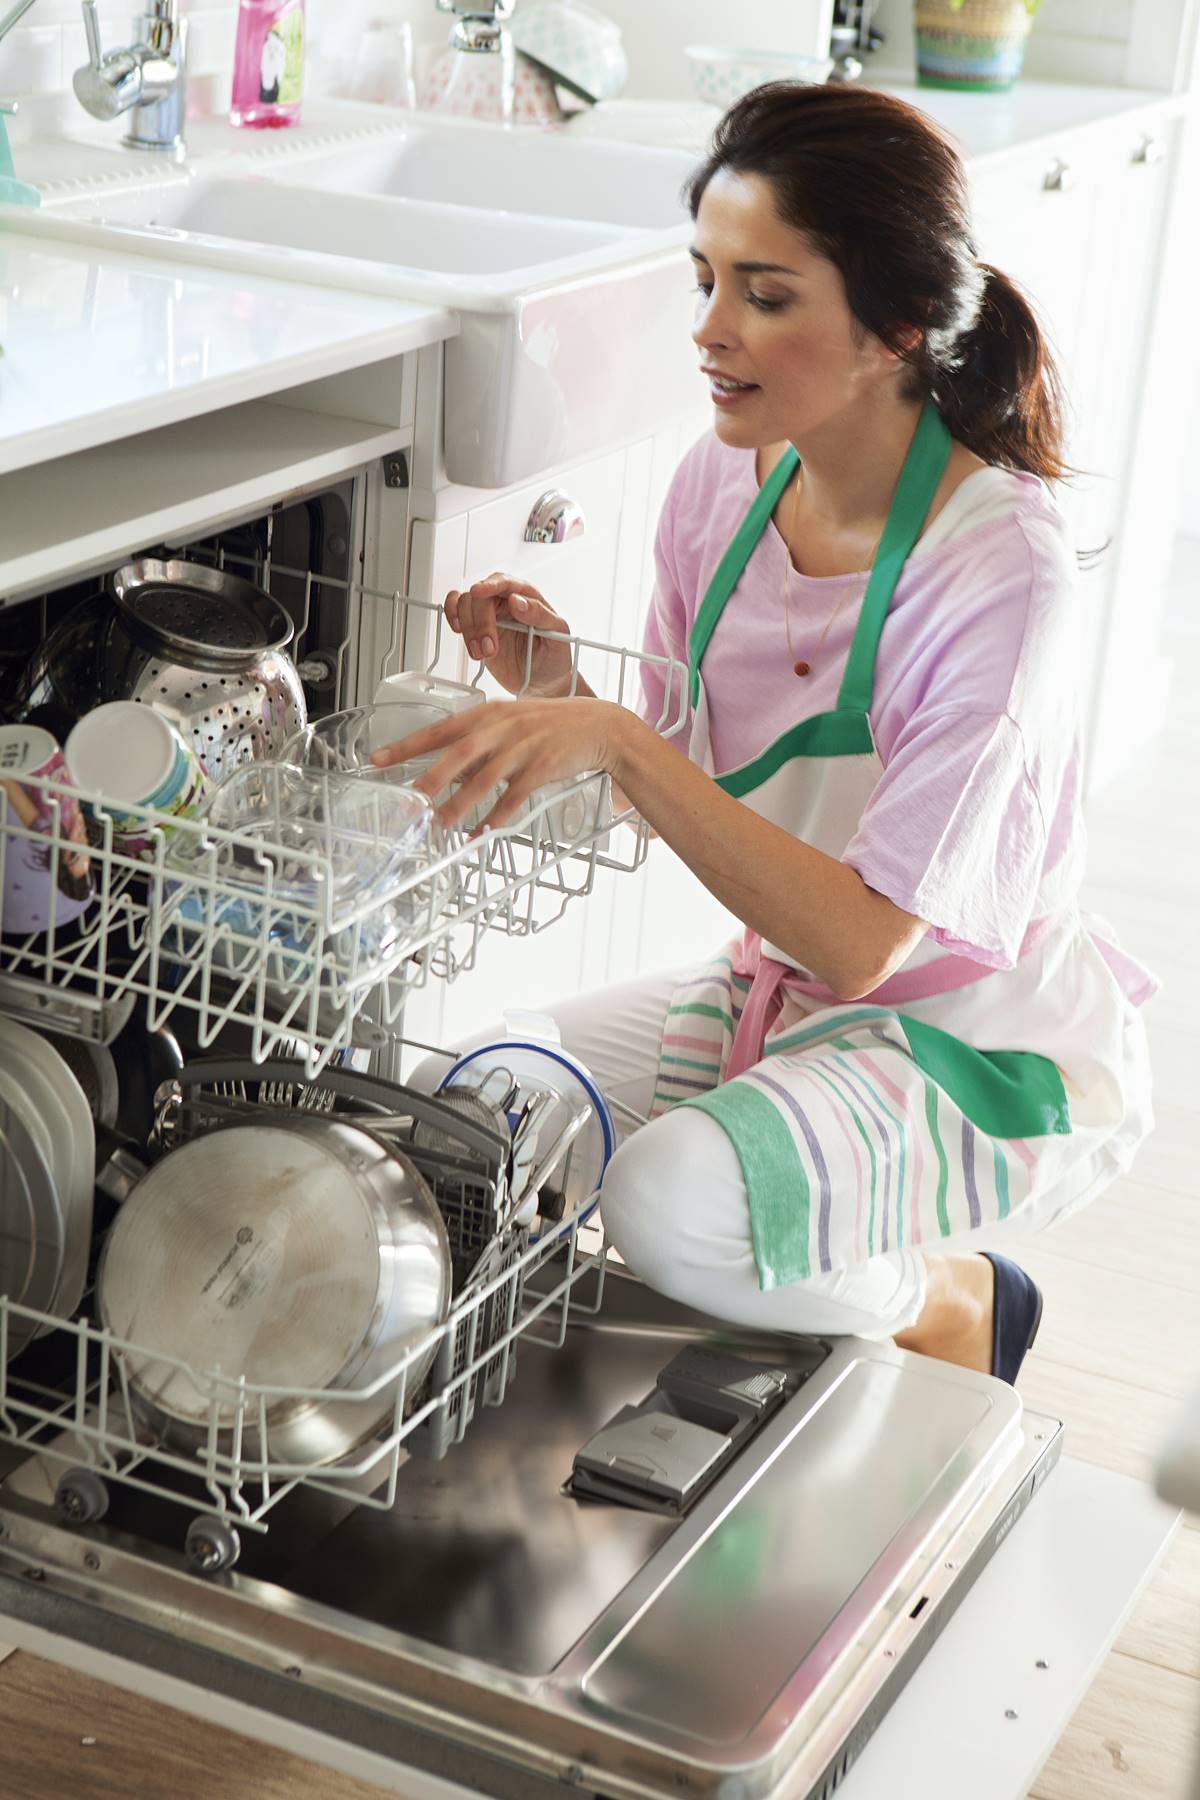 Woman-placing-utensils-in-the-dishwasher_418226.  Before: empty the dishwasher and the drainer